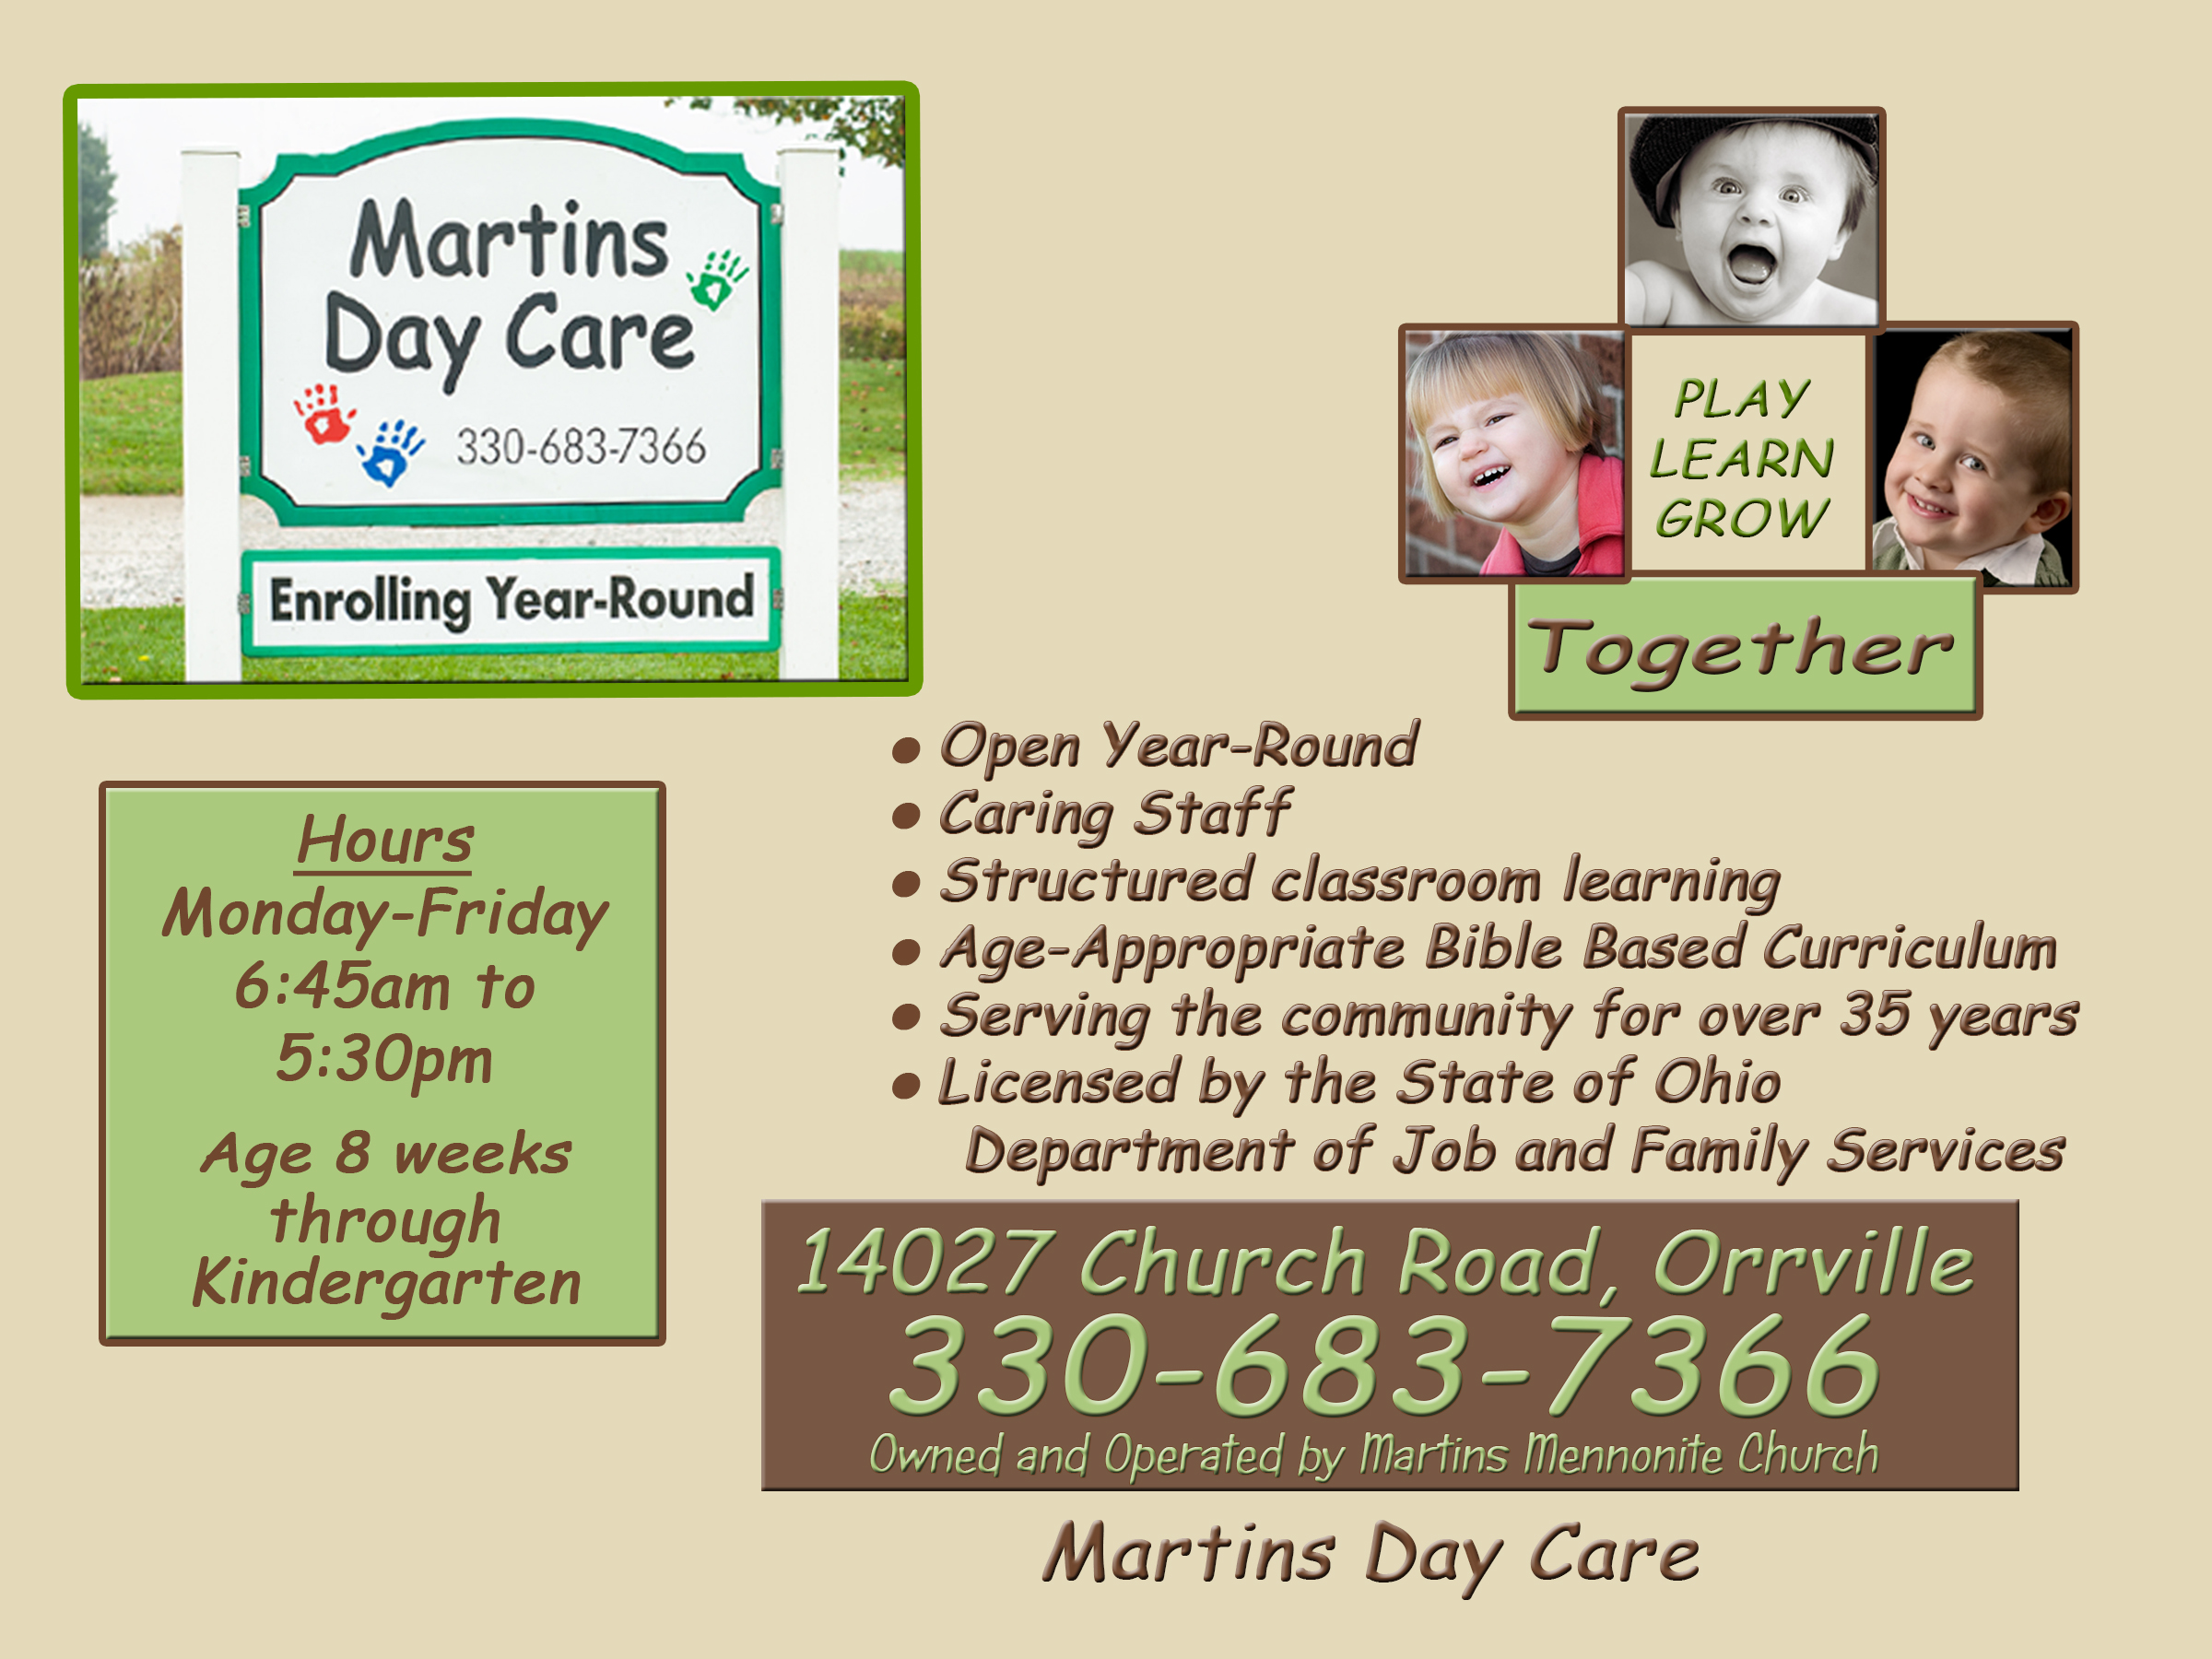 Martins Day Care